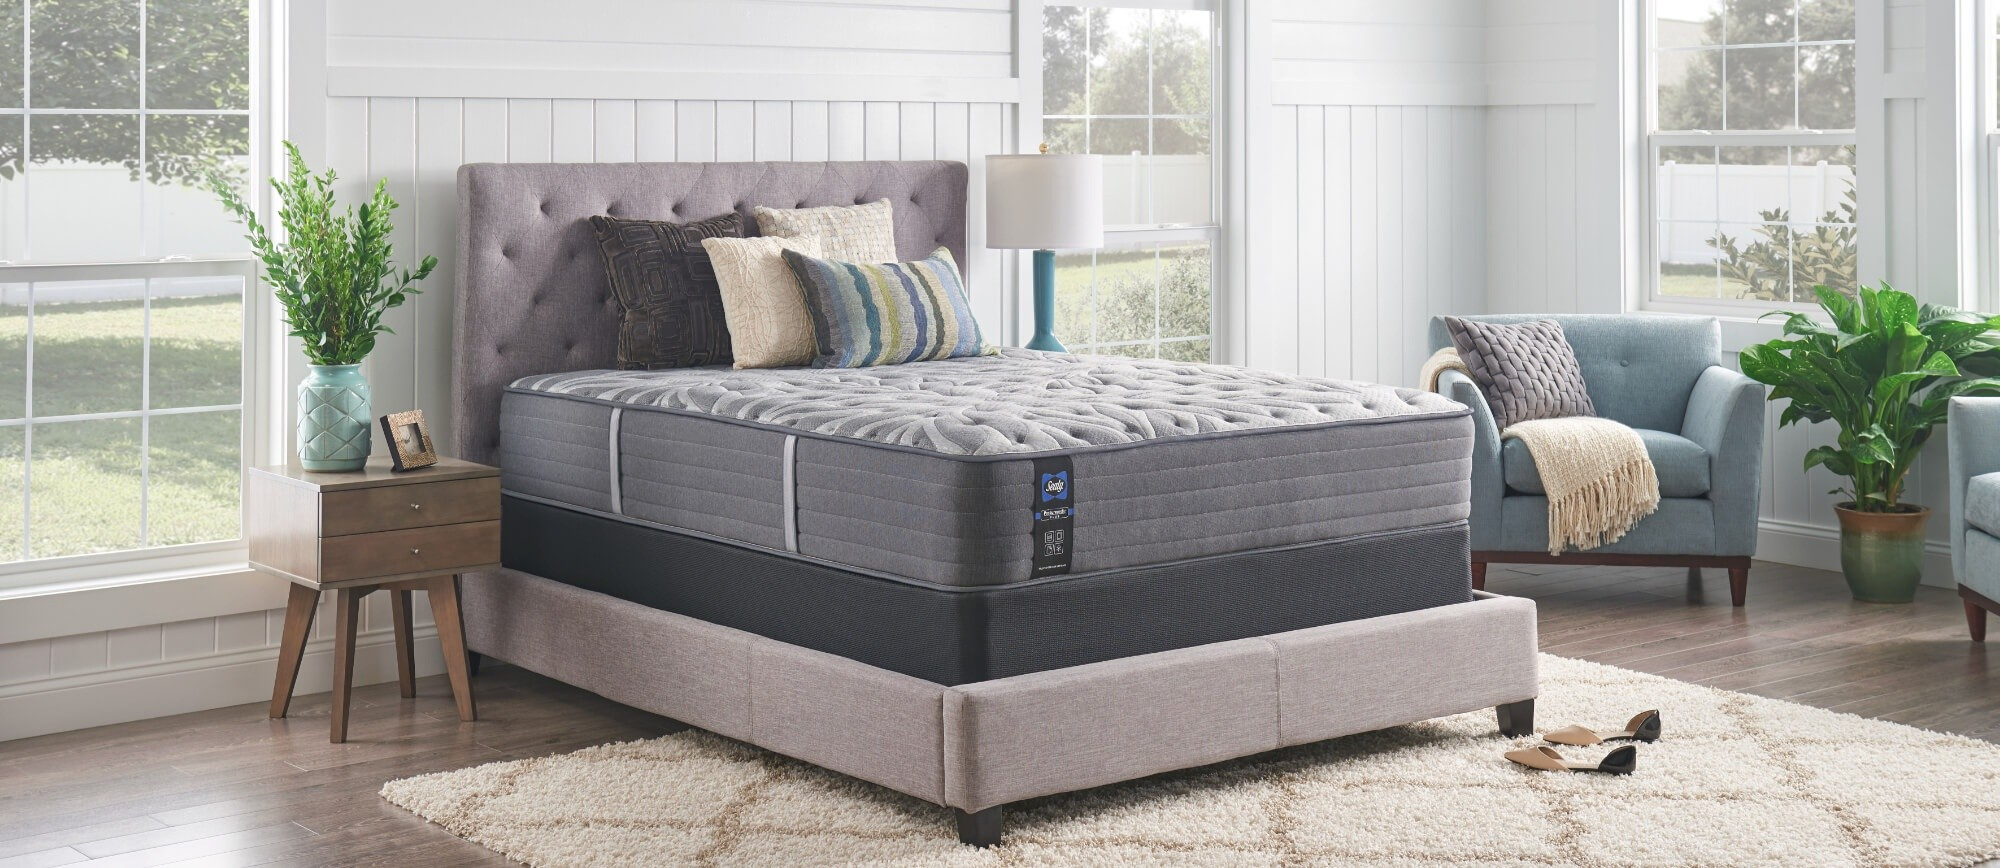 A Posturepedic Plus mattress